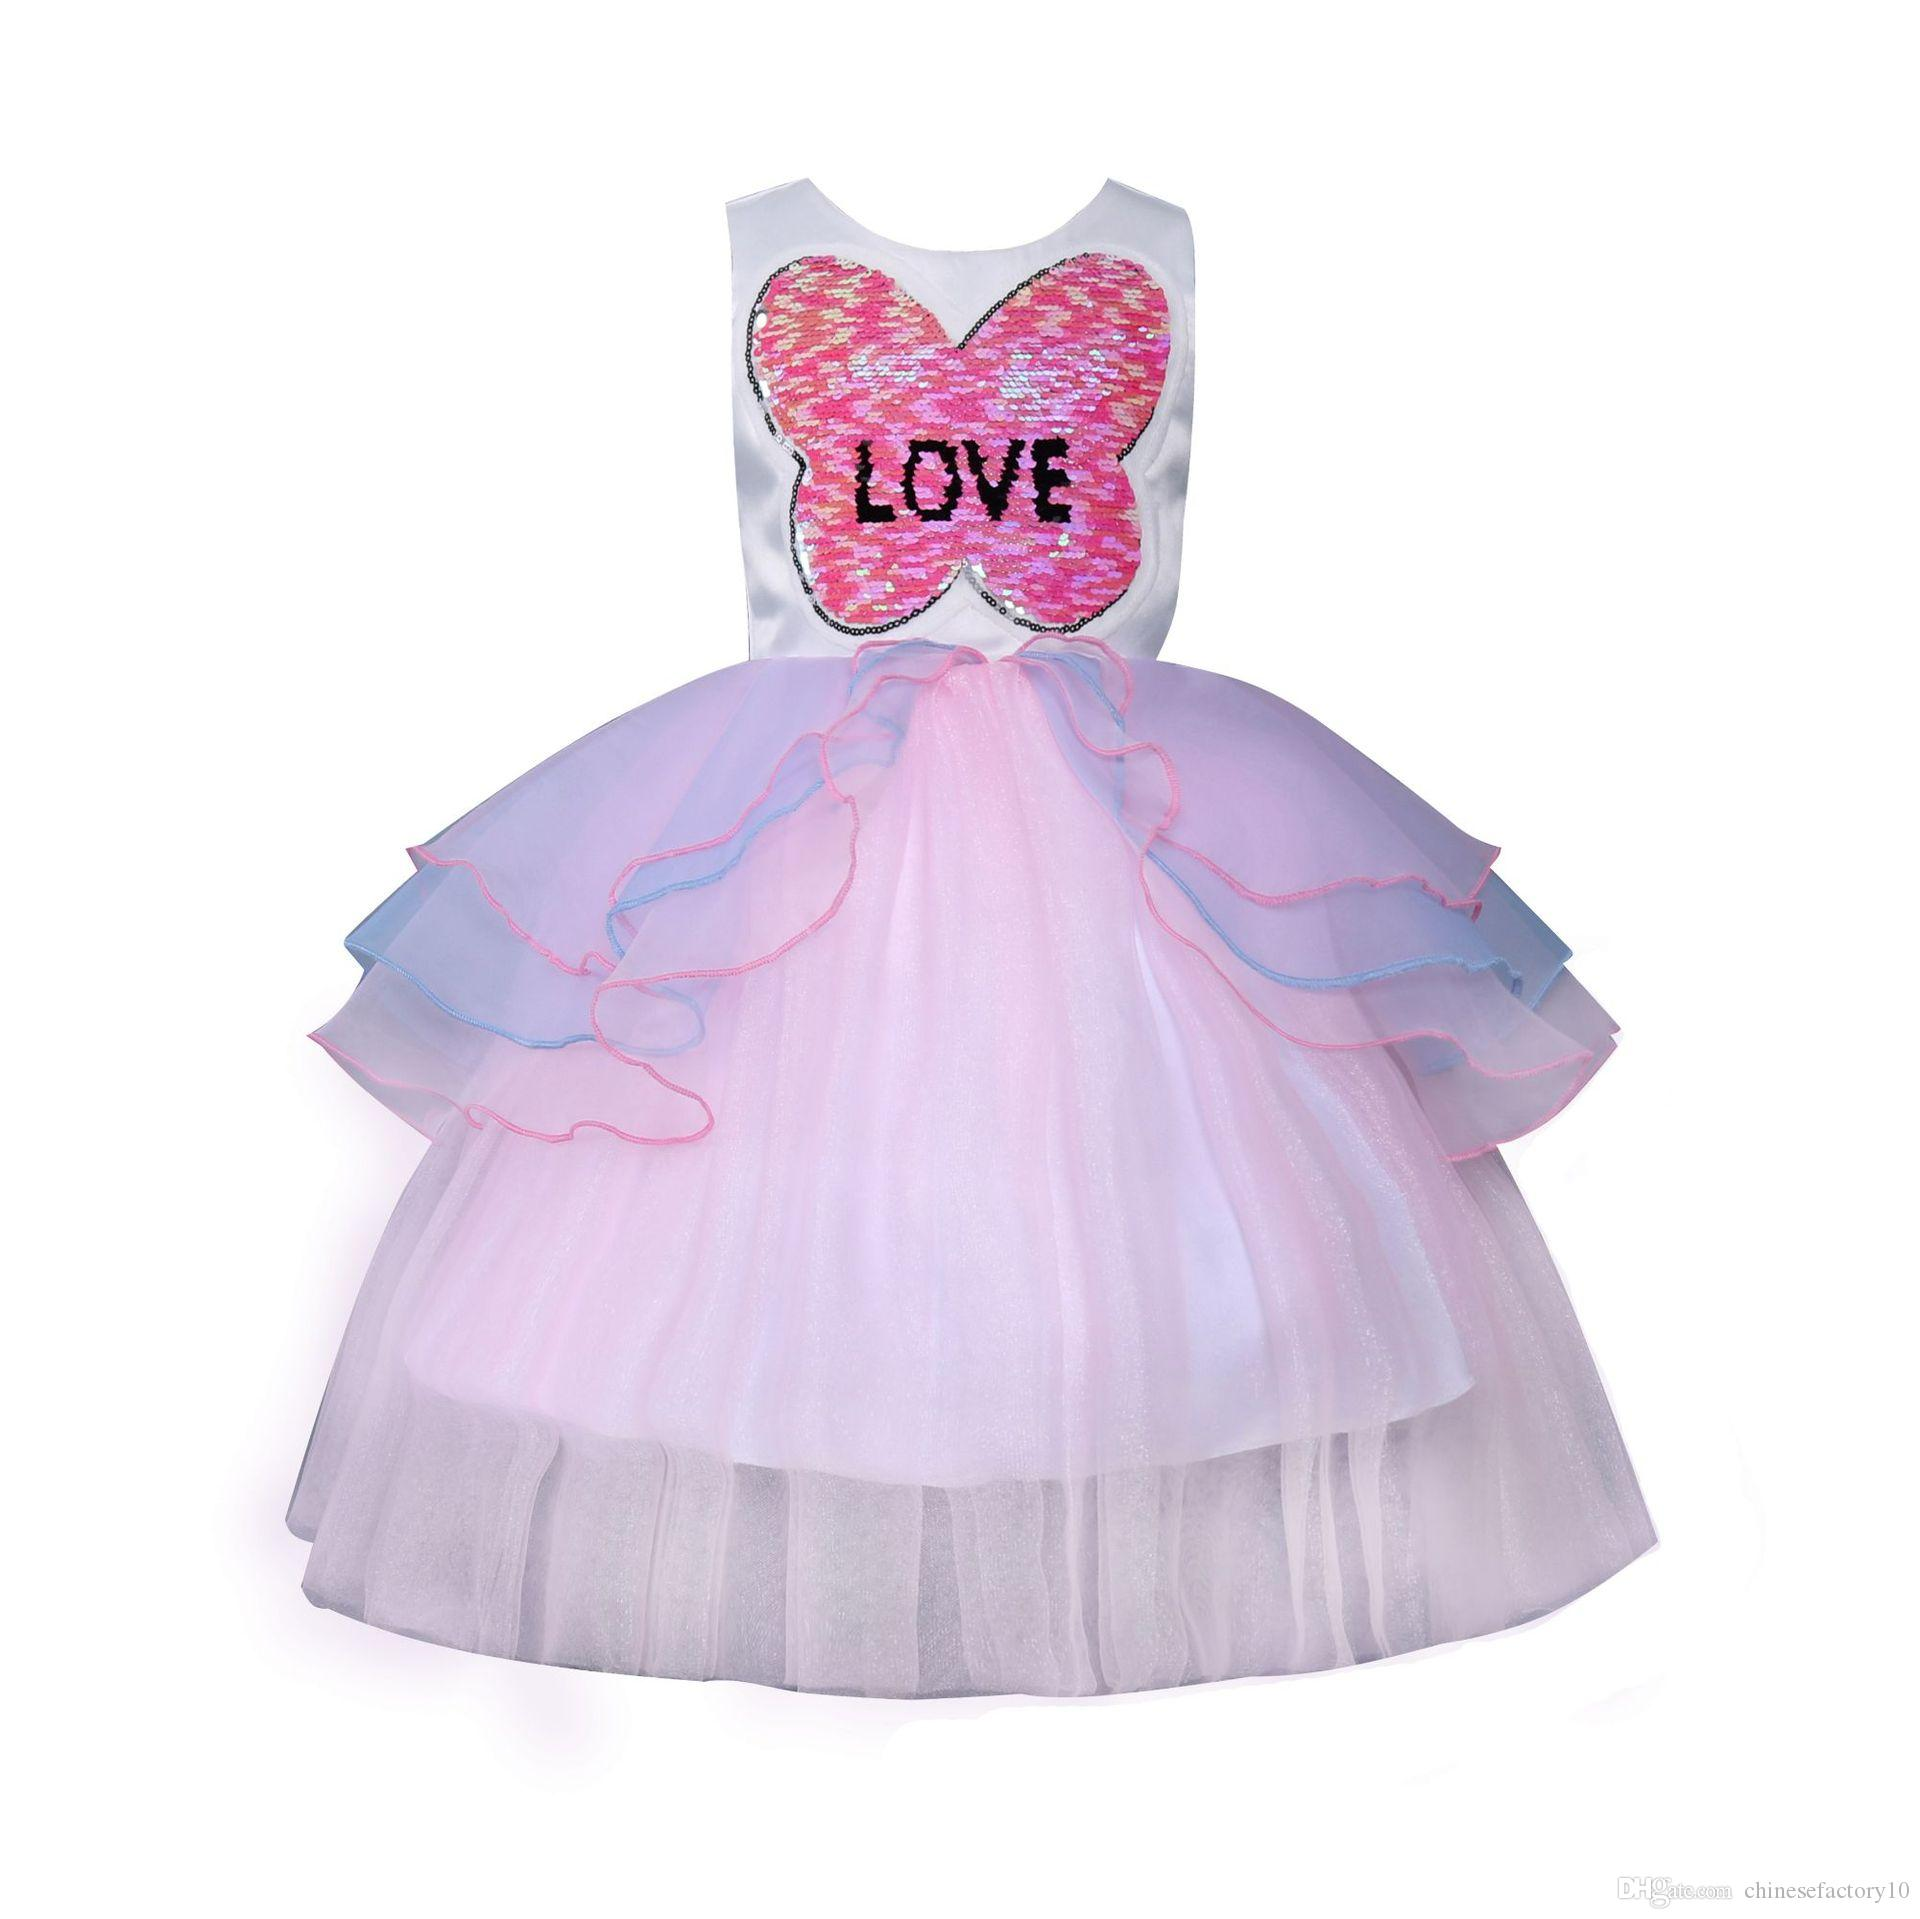 Baby Girl Love Dress Summer Sequins Party Wedding Dresses Prom Little Girls Patchwork Princess Dress Sleeveless New 2018